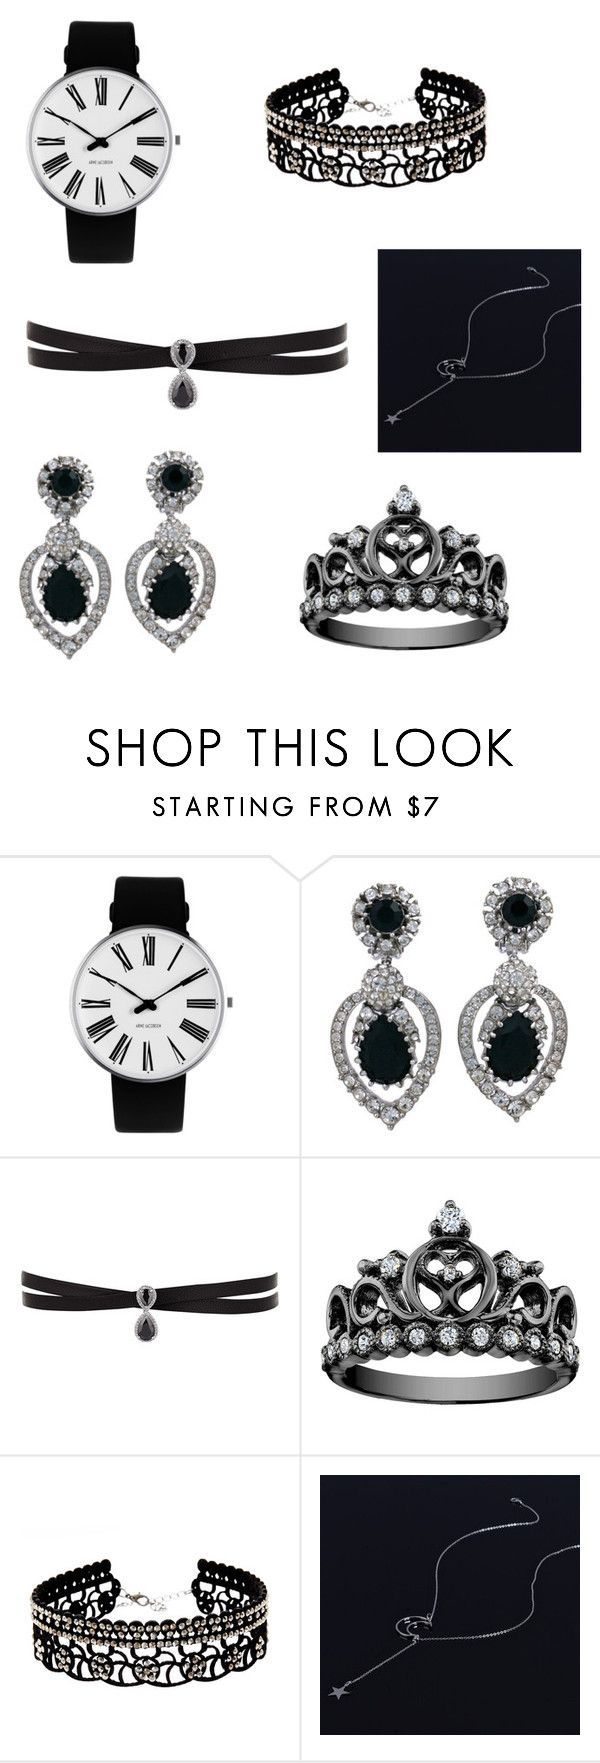 jewelry black set by mary-minge on Polyvore featuring Rosendahl, Fallon, Ciner, Natasha, love and blackandsilver